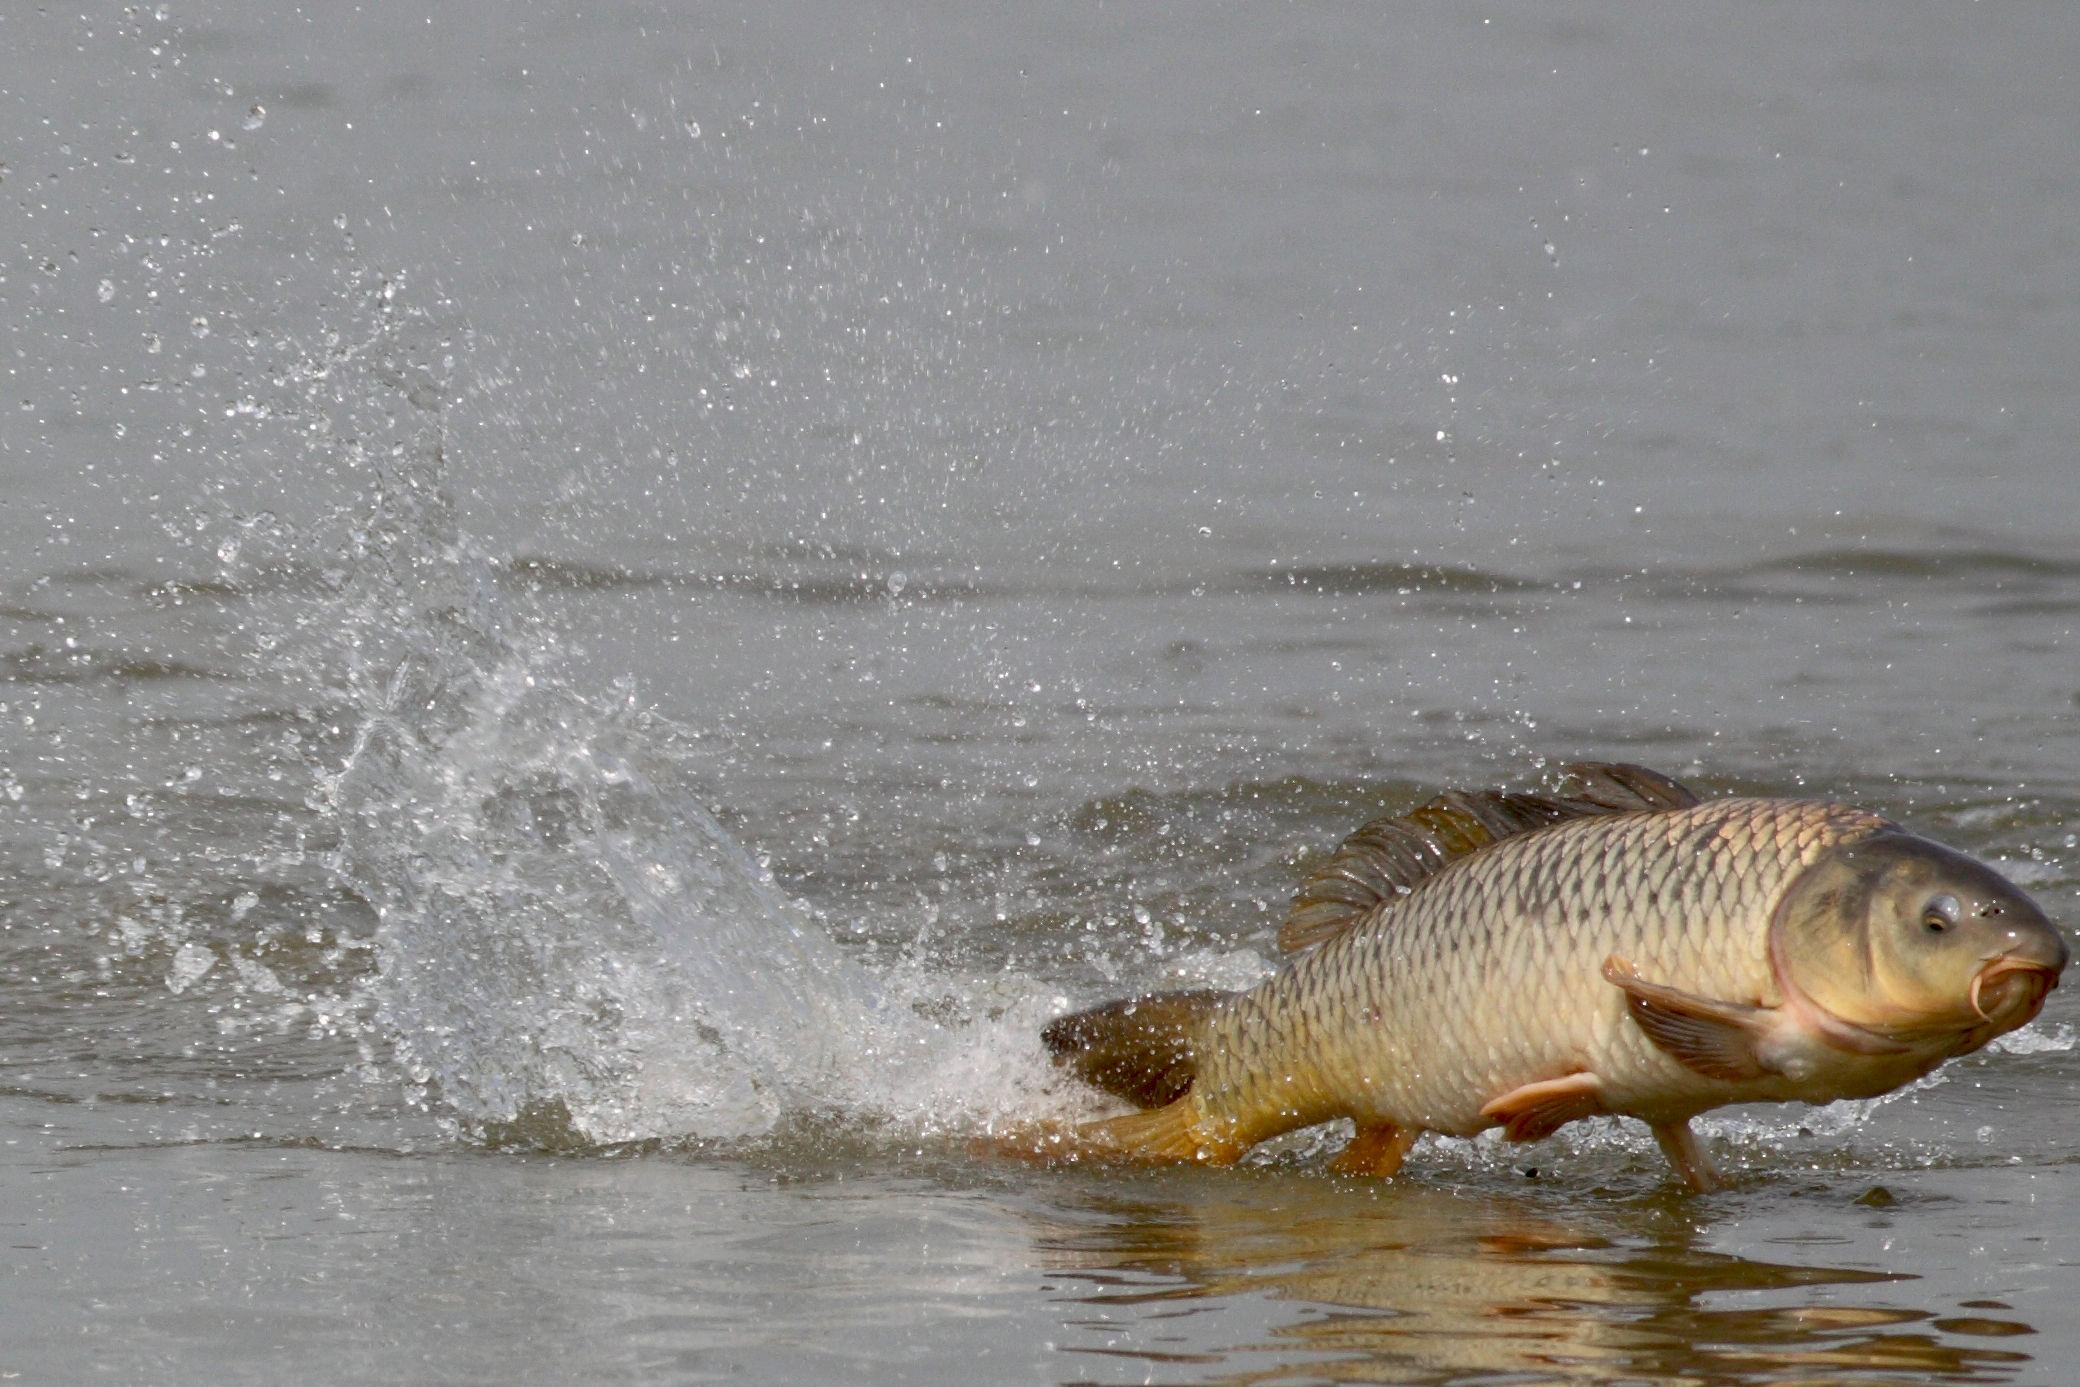 Asian carp hd wallpaper background image 2080x1387 - Carp fishing wallpaper hd ...